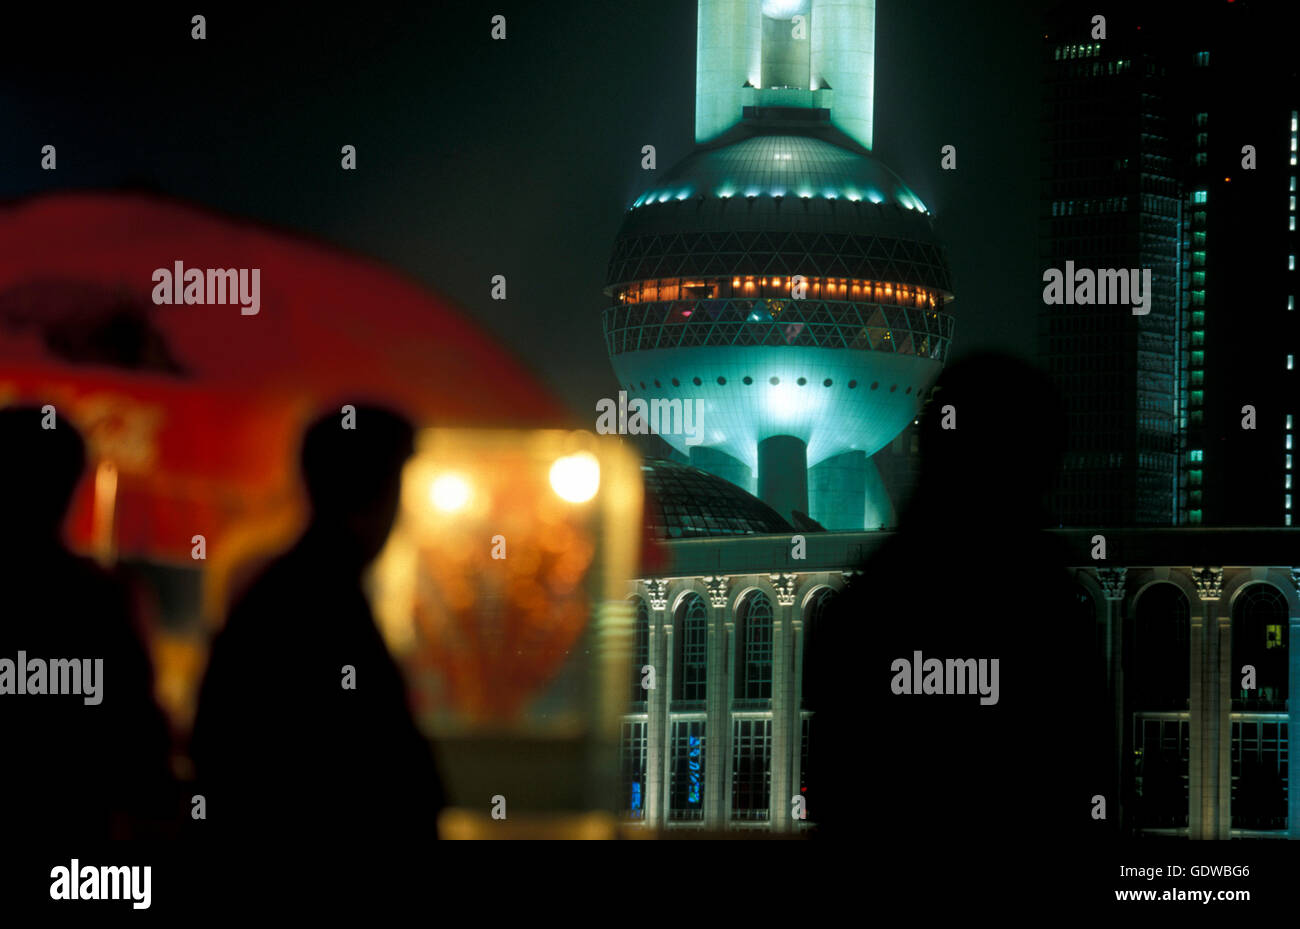 the skyline of Pudong in the City of Shanghai in china in east asia. Stock Photo